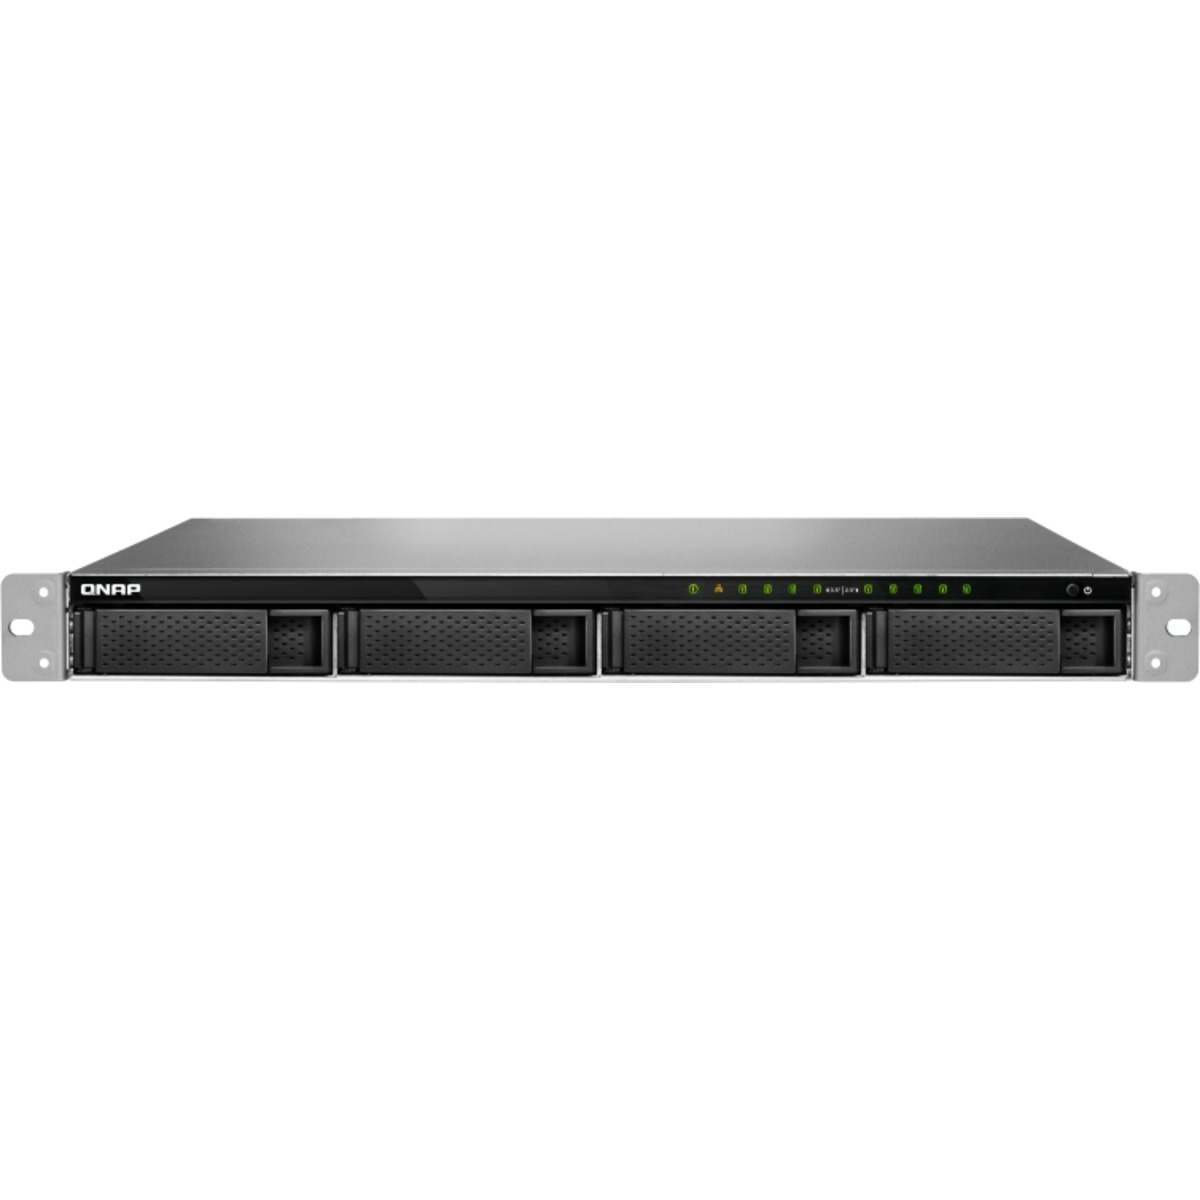 buy $3549 QNAP TS-983XU-RP 32tb RackMount NAS - Network Attached Storage Device 4x8000gb Seagate BarraCuda ST8000DM004 3.5 5400rpm SATA 6Gb/s HDD CONSUMER Class Drives Installed - Burn-In Tested - nas headquarters buy network attached storage server device das new raid-5 free shipping usa holiday new year clearance sale TS-983XU-RP